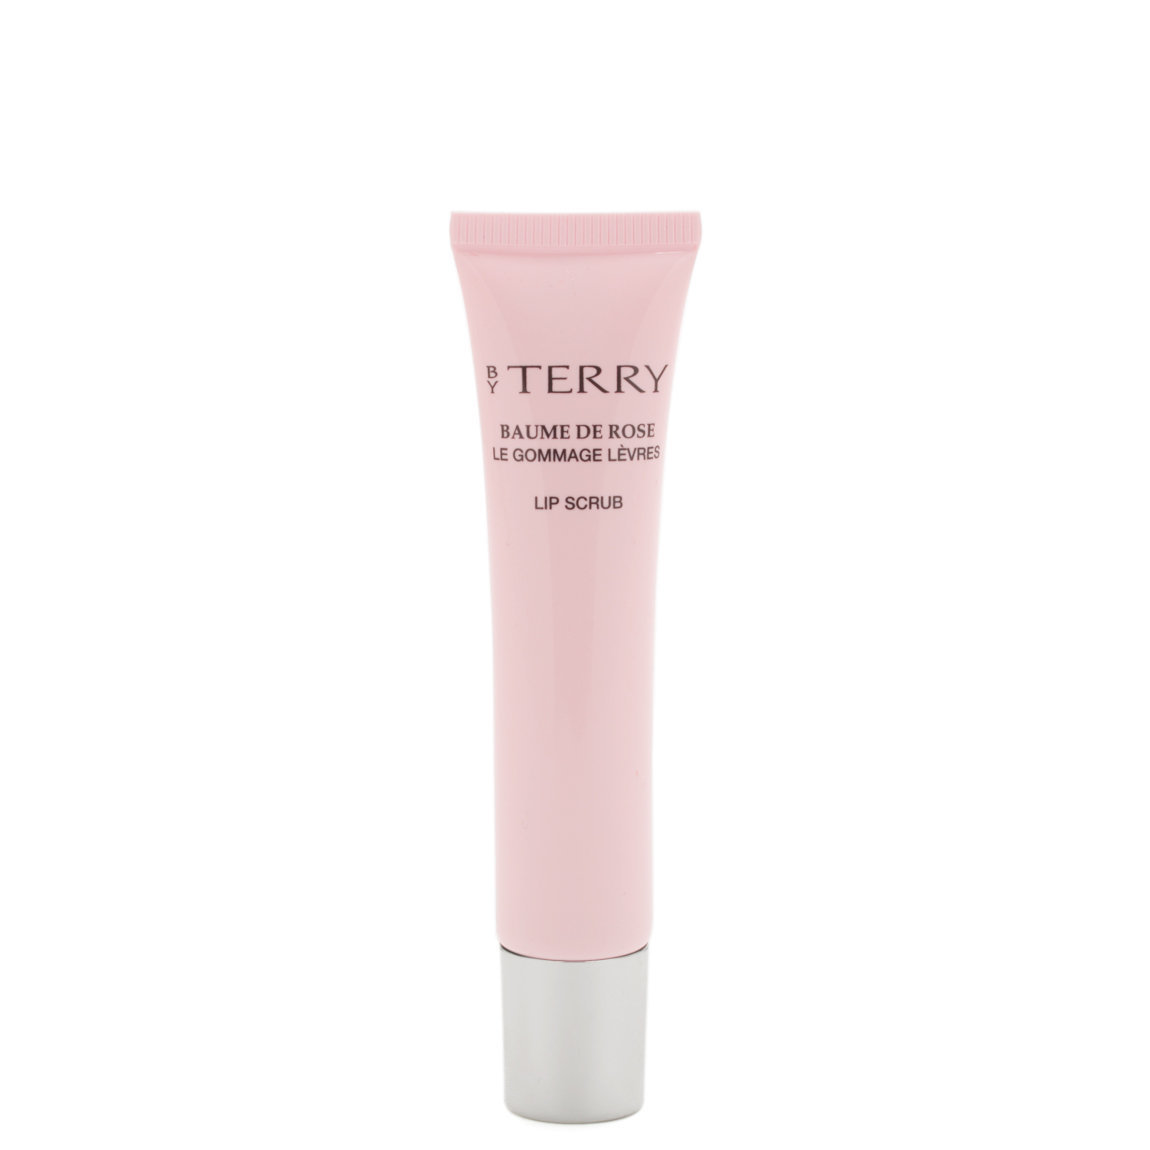 BY TERRY Baume de Rose Lip Scrub product smear.